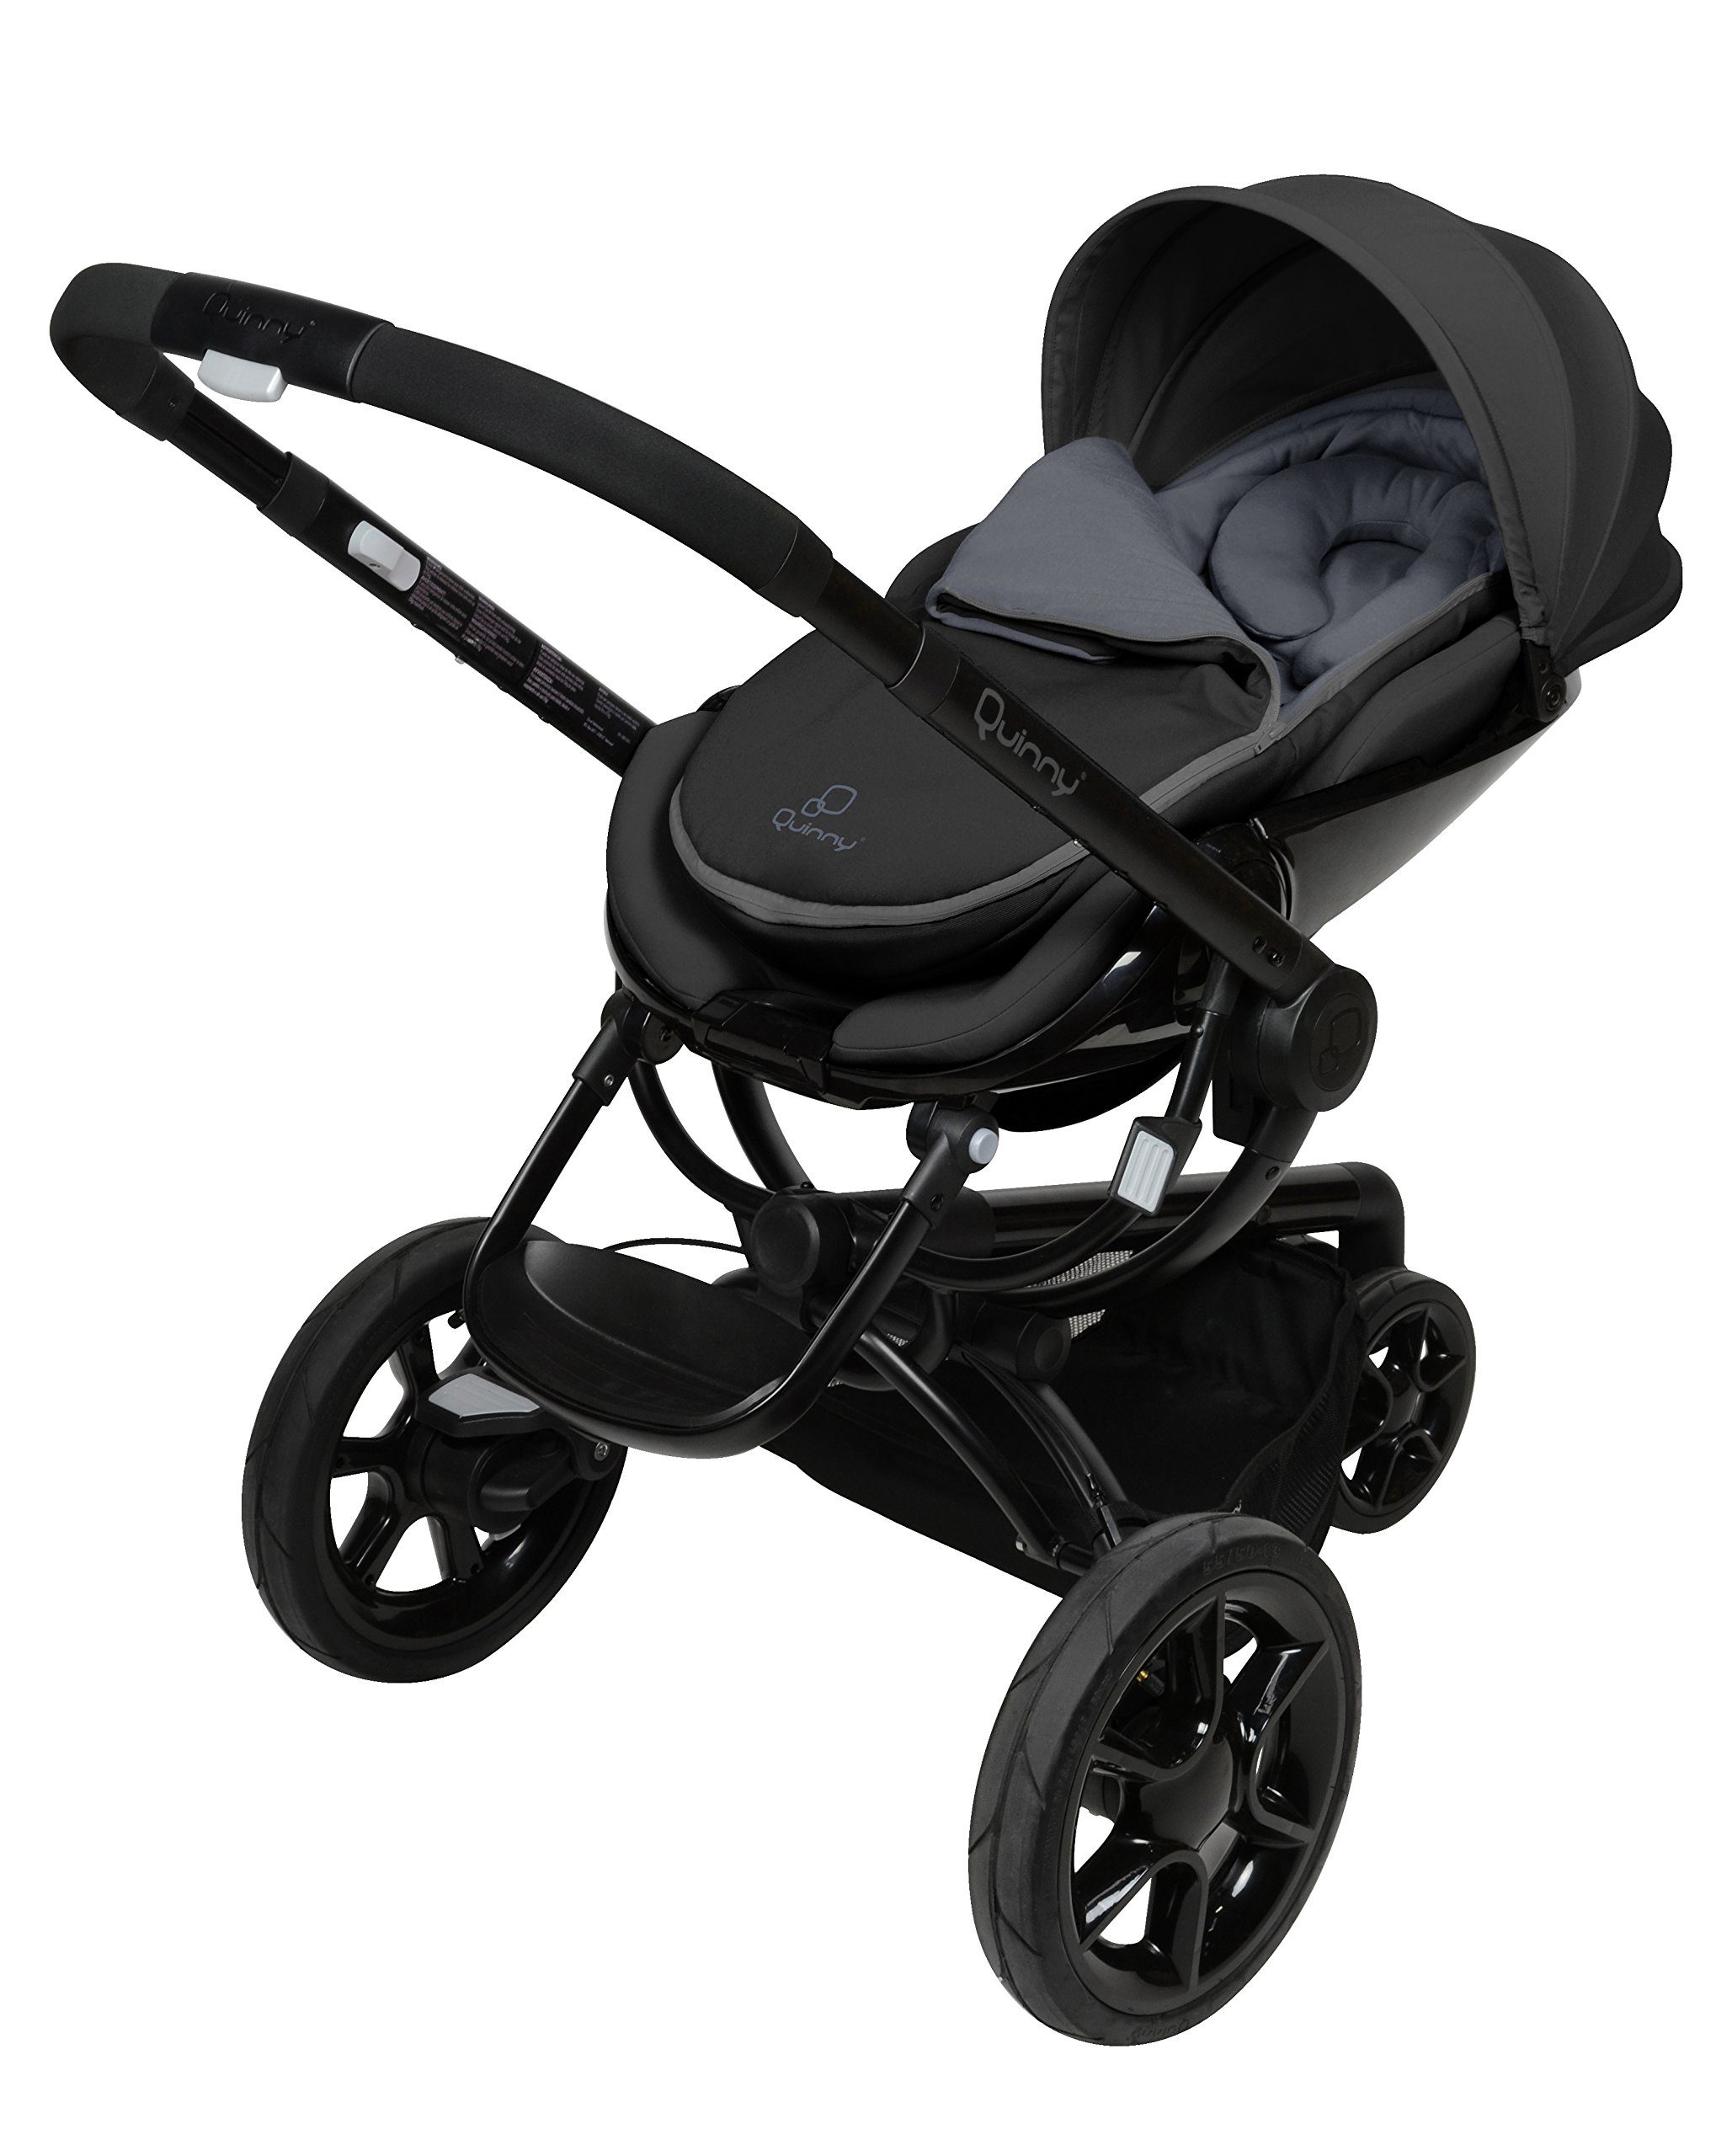 Quinny Moodd Pushchair Frame, Black Devotion Maxi-Cosi Stylish urban pushchair with cozy baby nest - suitable from birth to 15 kg (approx. 3.5 years) Foam filled comfort tyres and lockable front swivel wheels for a smooth ride Reversible seat unit with 3 recline position (including lie-flat options for newborns) 3